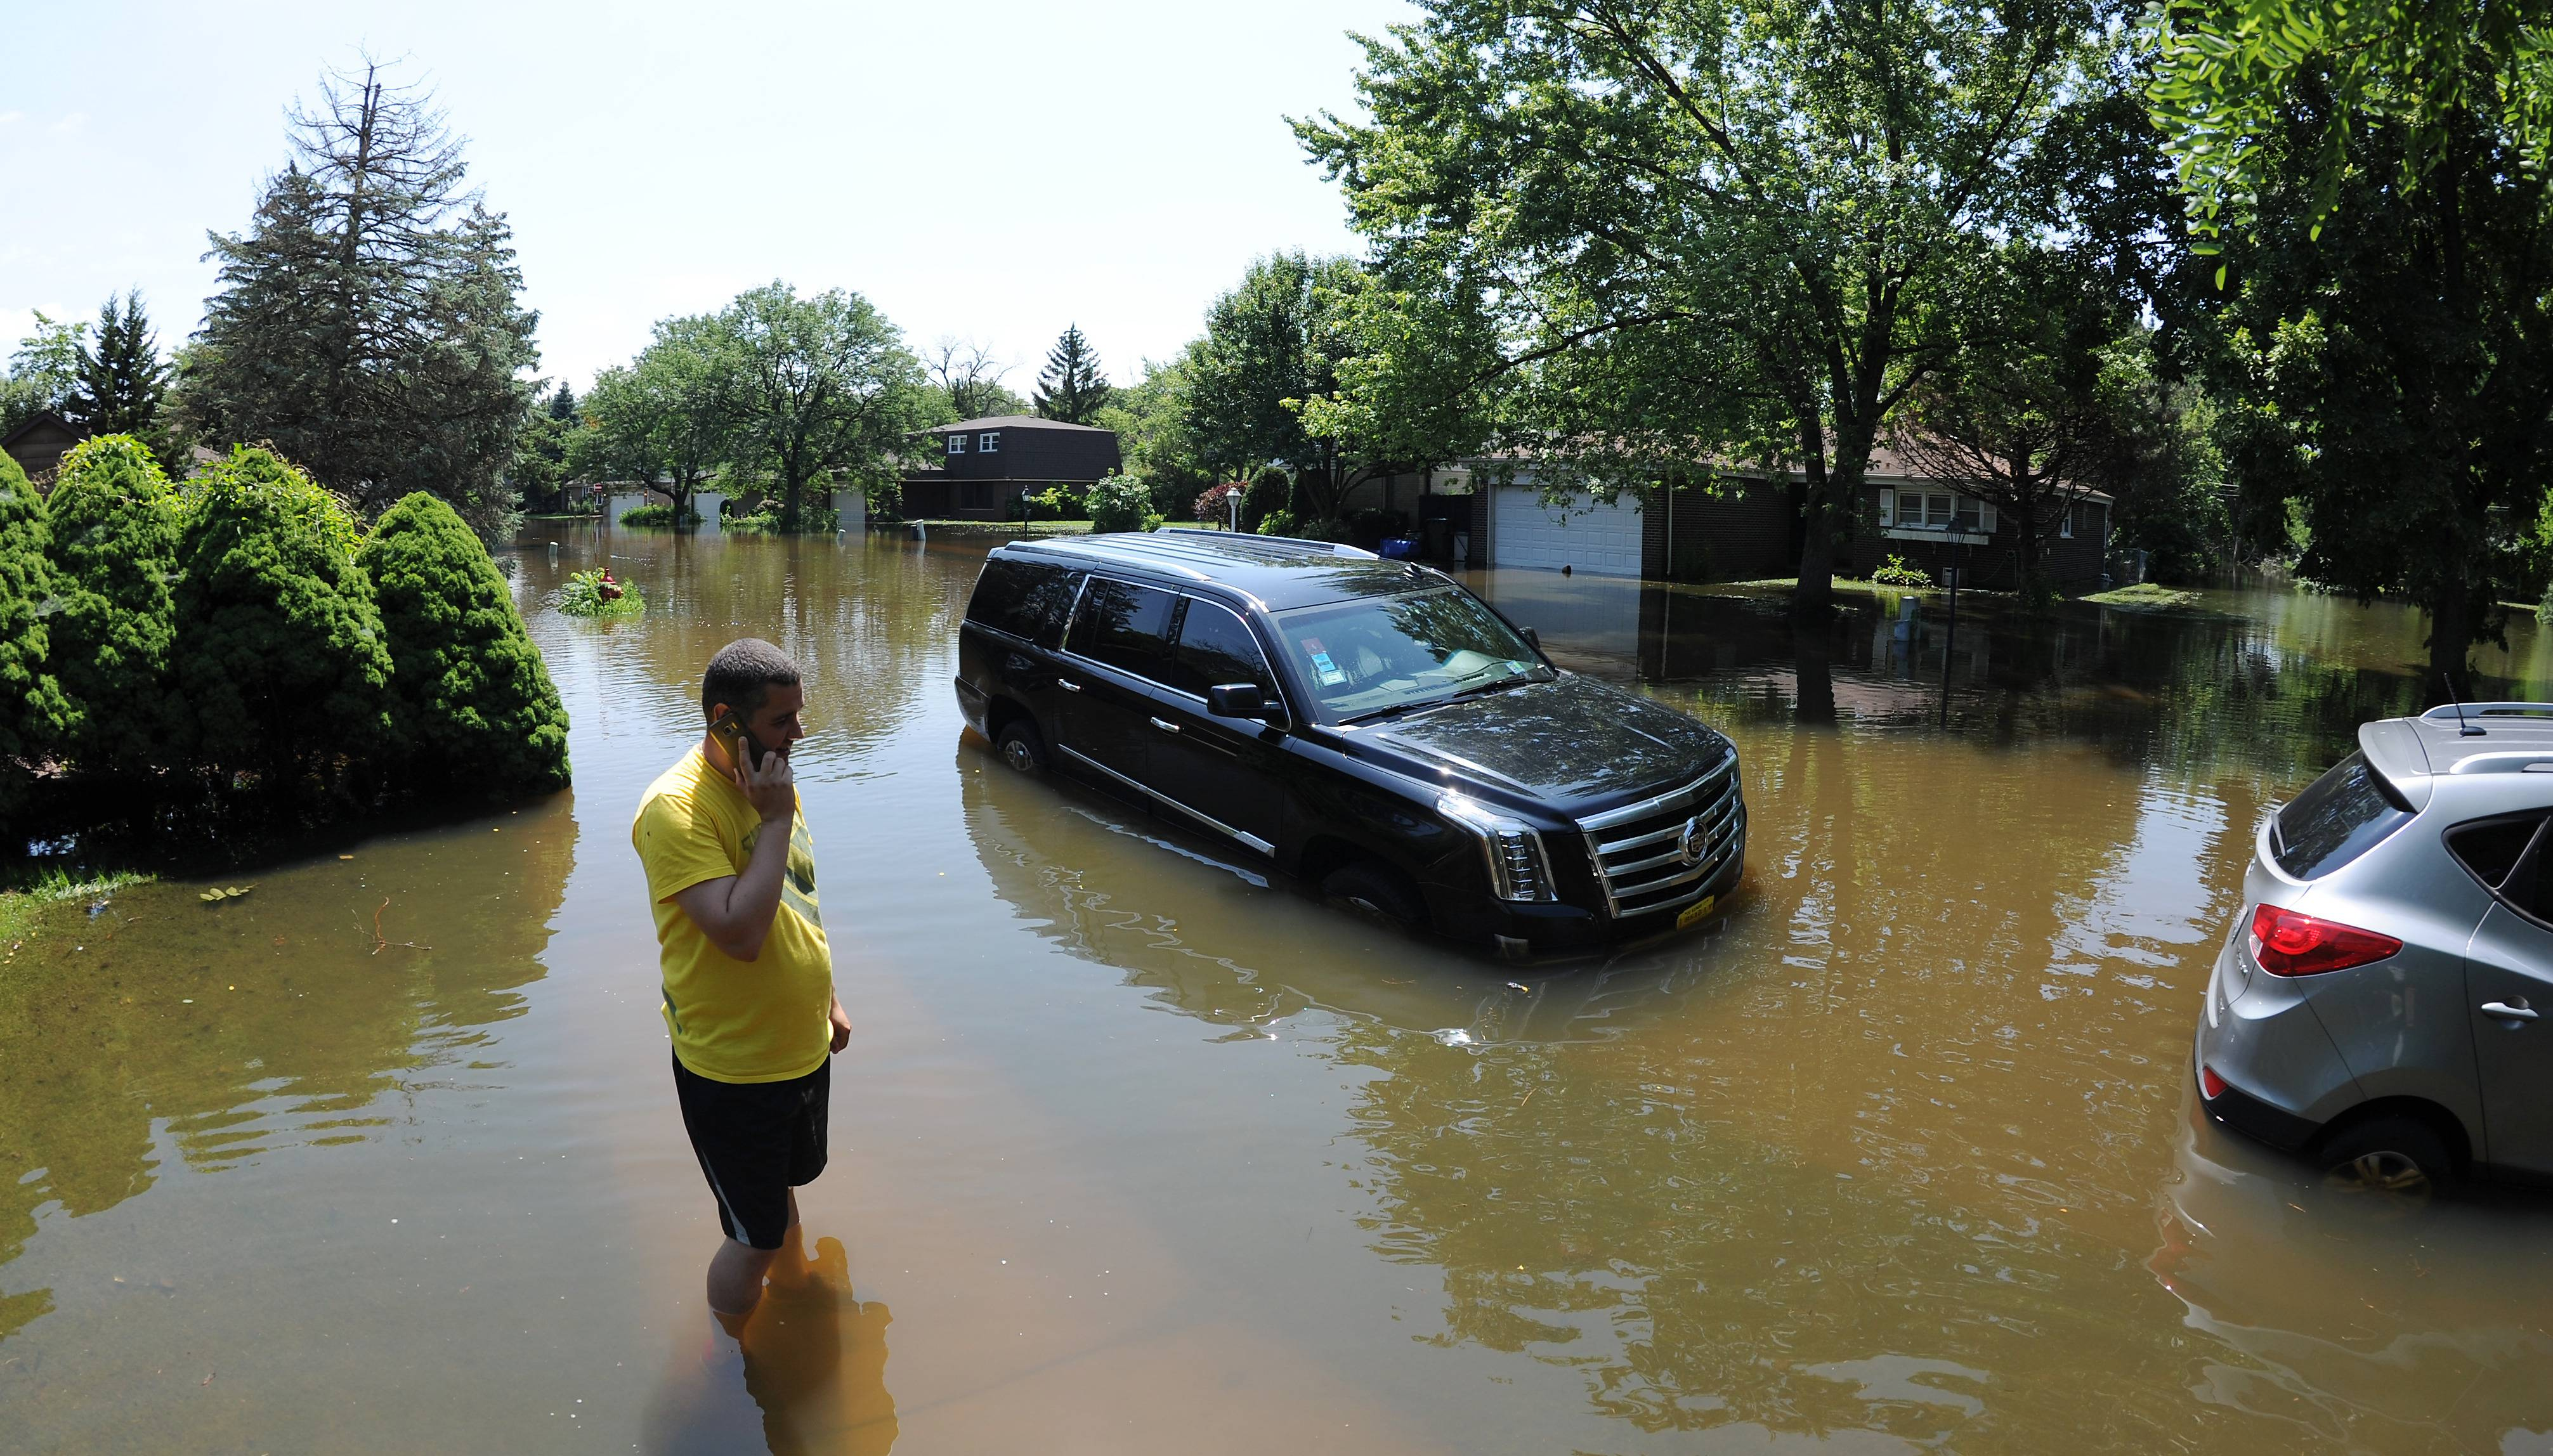 Due to flooding in areas like Des Plaines, Gov. Bruce Rauner on Sunday declared Cook County a state disaster area. The declaration will help residents like Cata Sebe, whose car got caught up in the floodwaters on Big Bend Drive, get assistance.